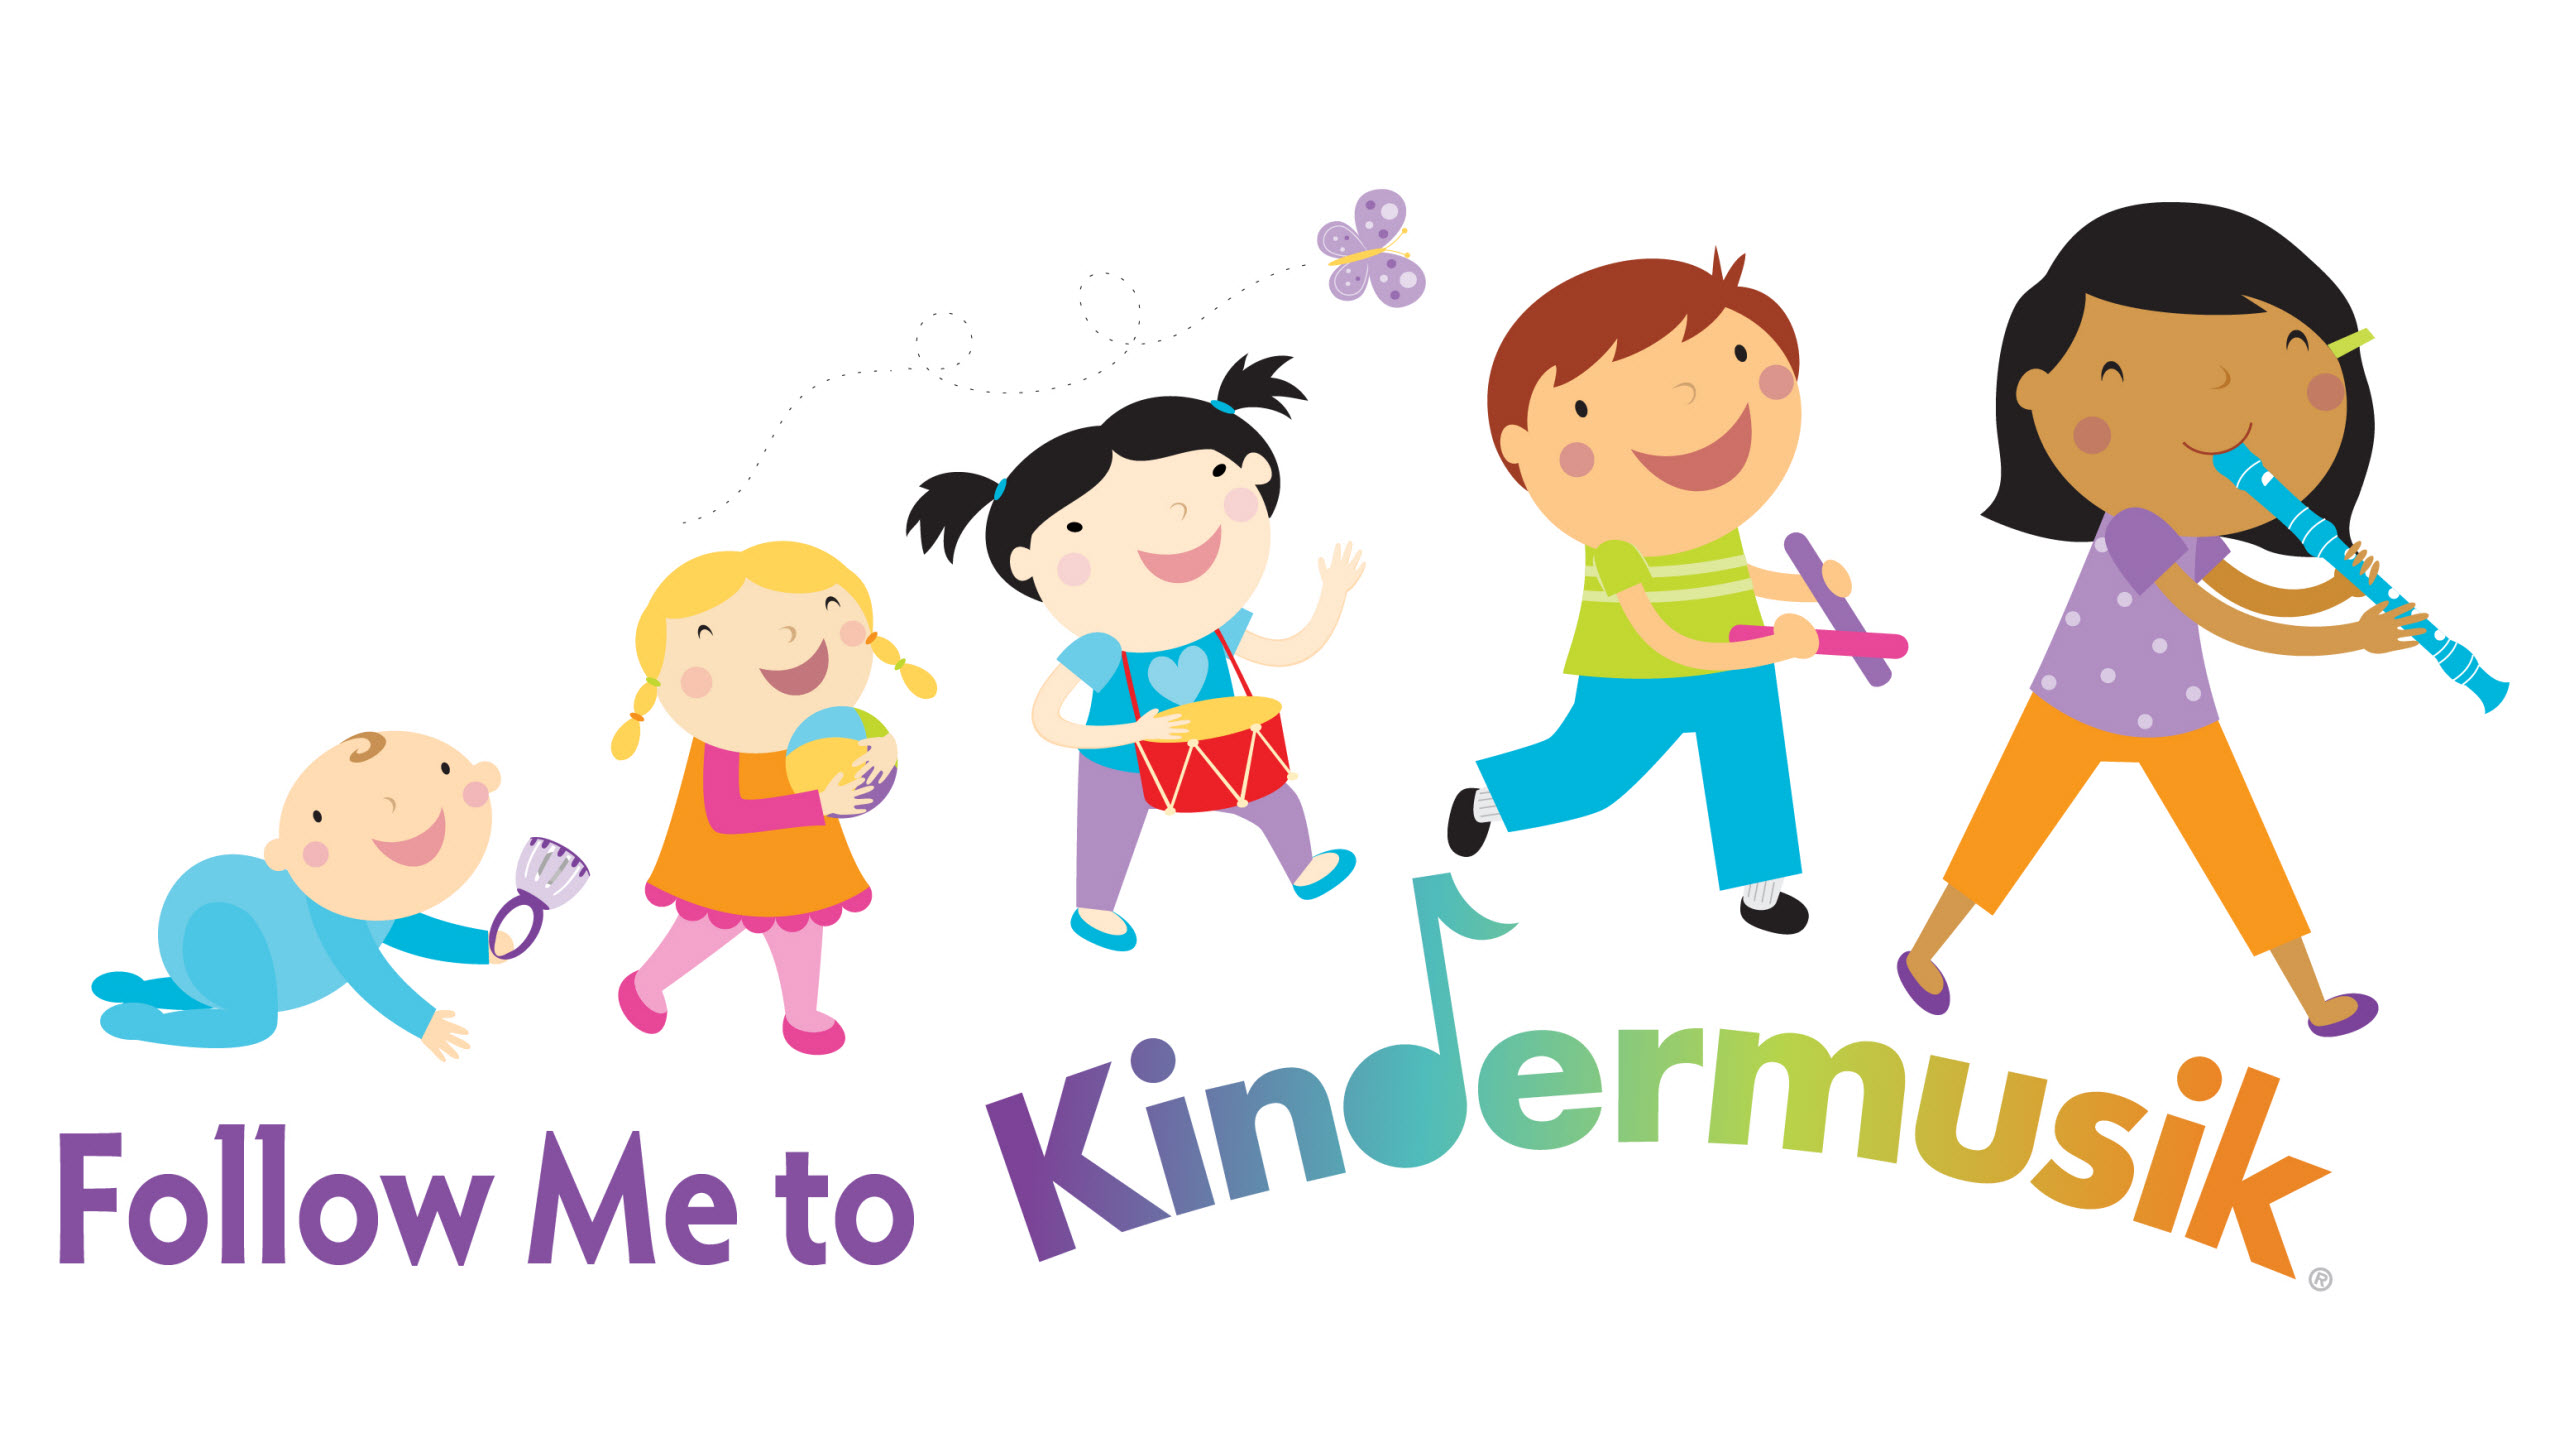 Graphic-Follow-Me-to-Kindermusik-1-2560x1440.jpg (2560×1440)